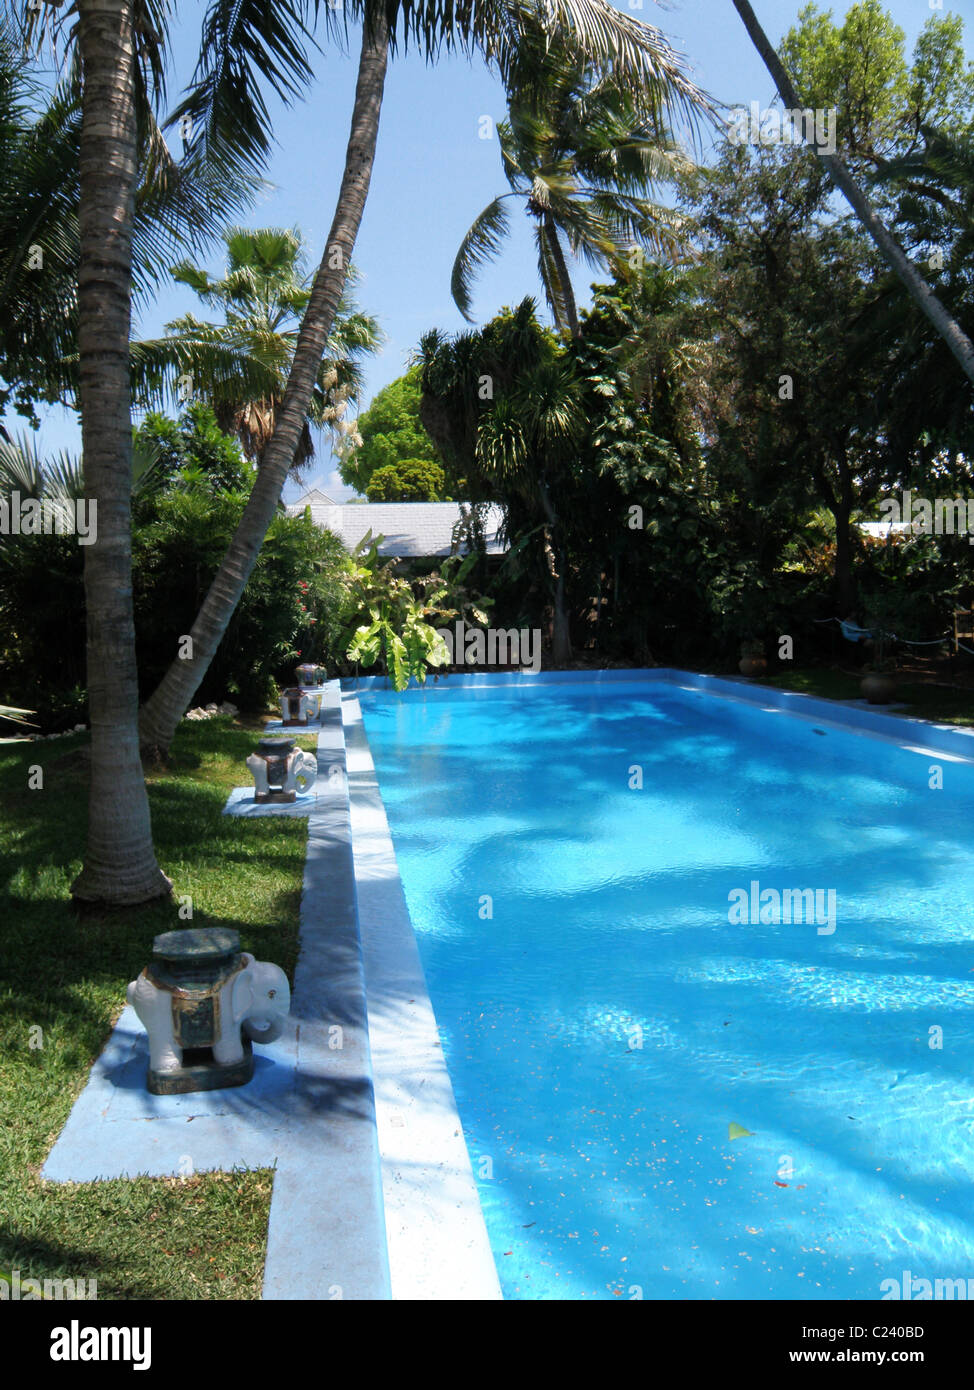 The backyard pool of the Hemingway house in Key West, Florida. Stock Photo